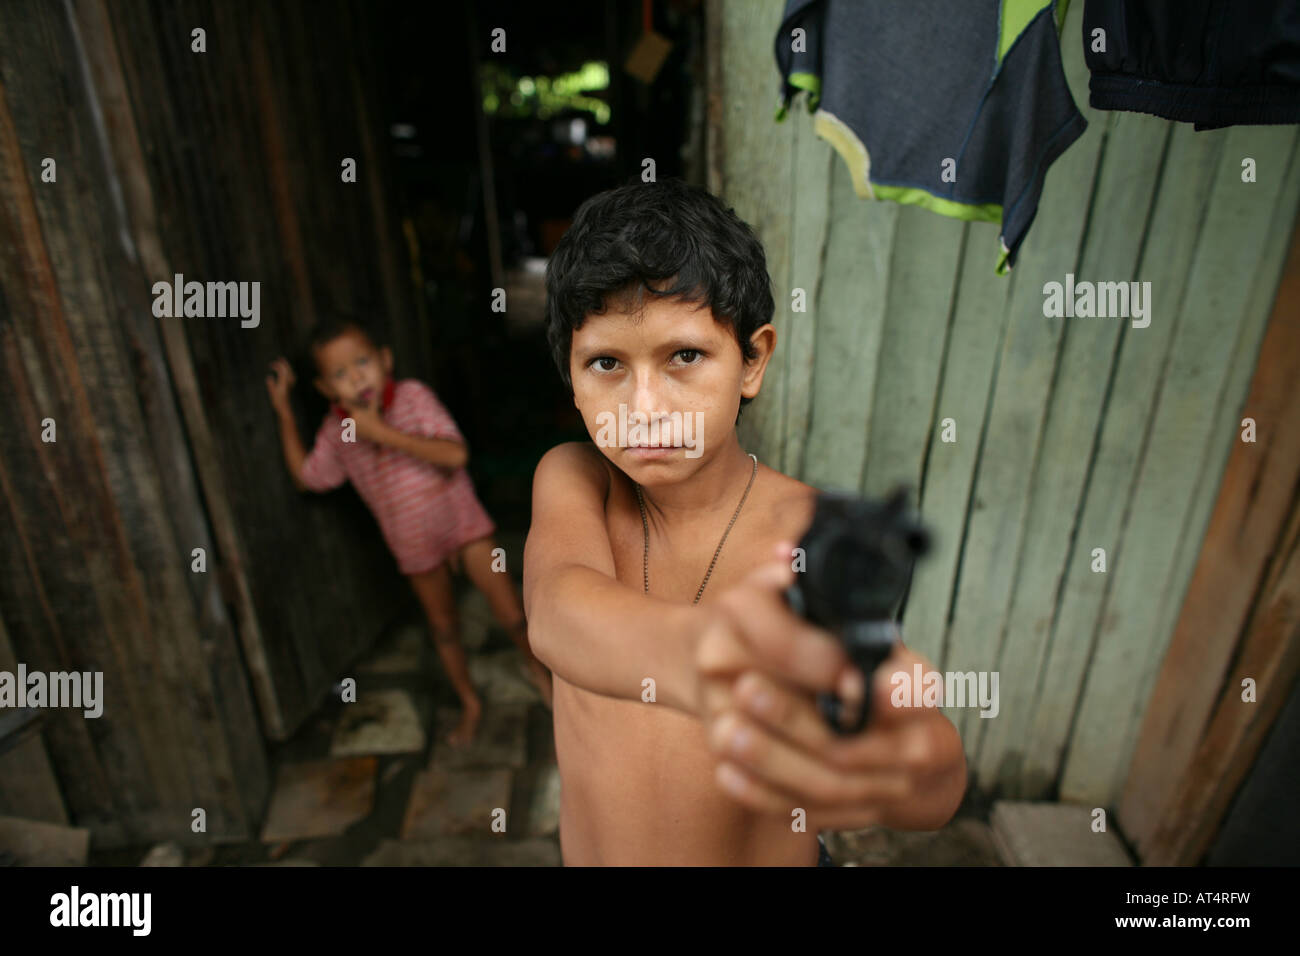 Children joining local gangs who become extremely violent Stock Photo